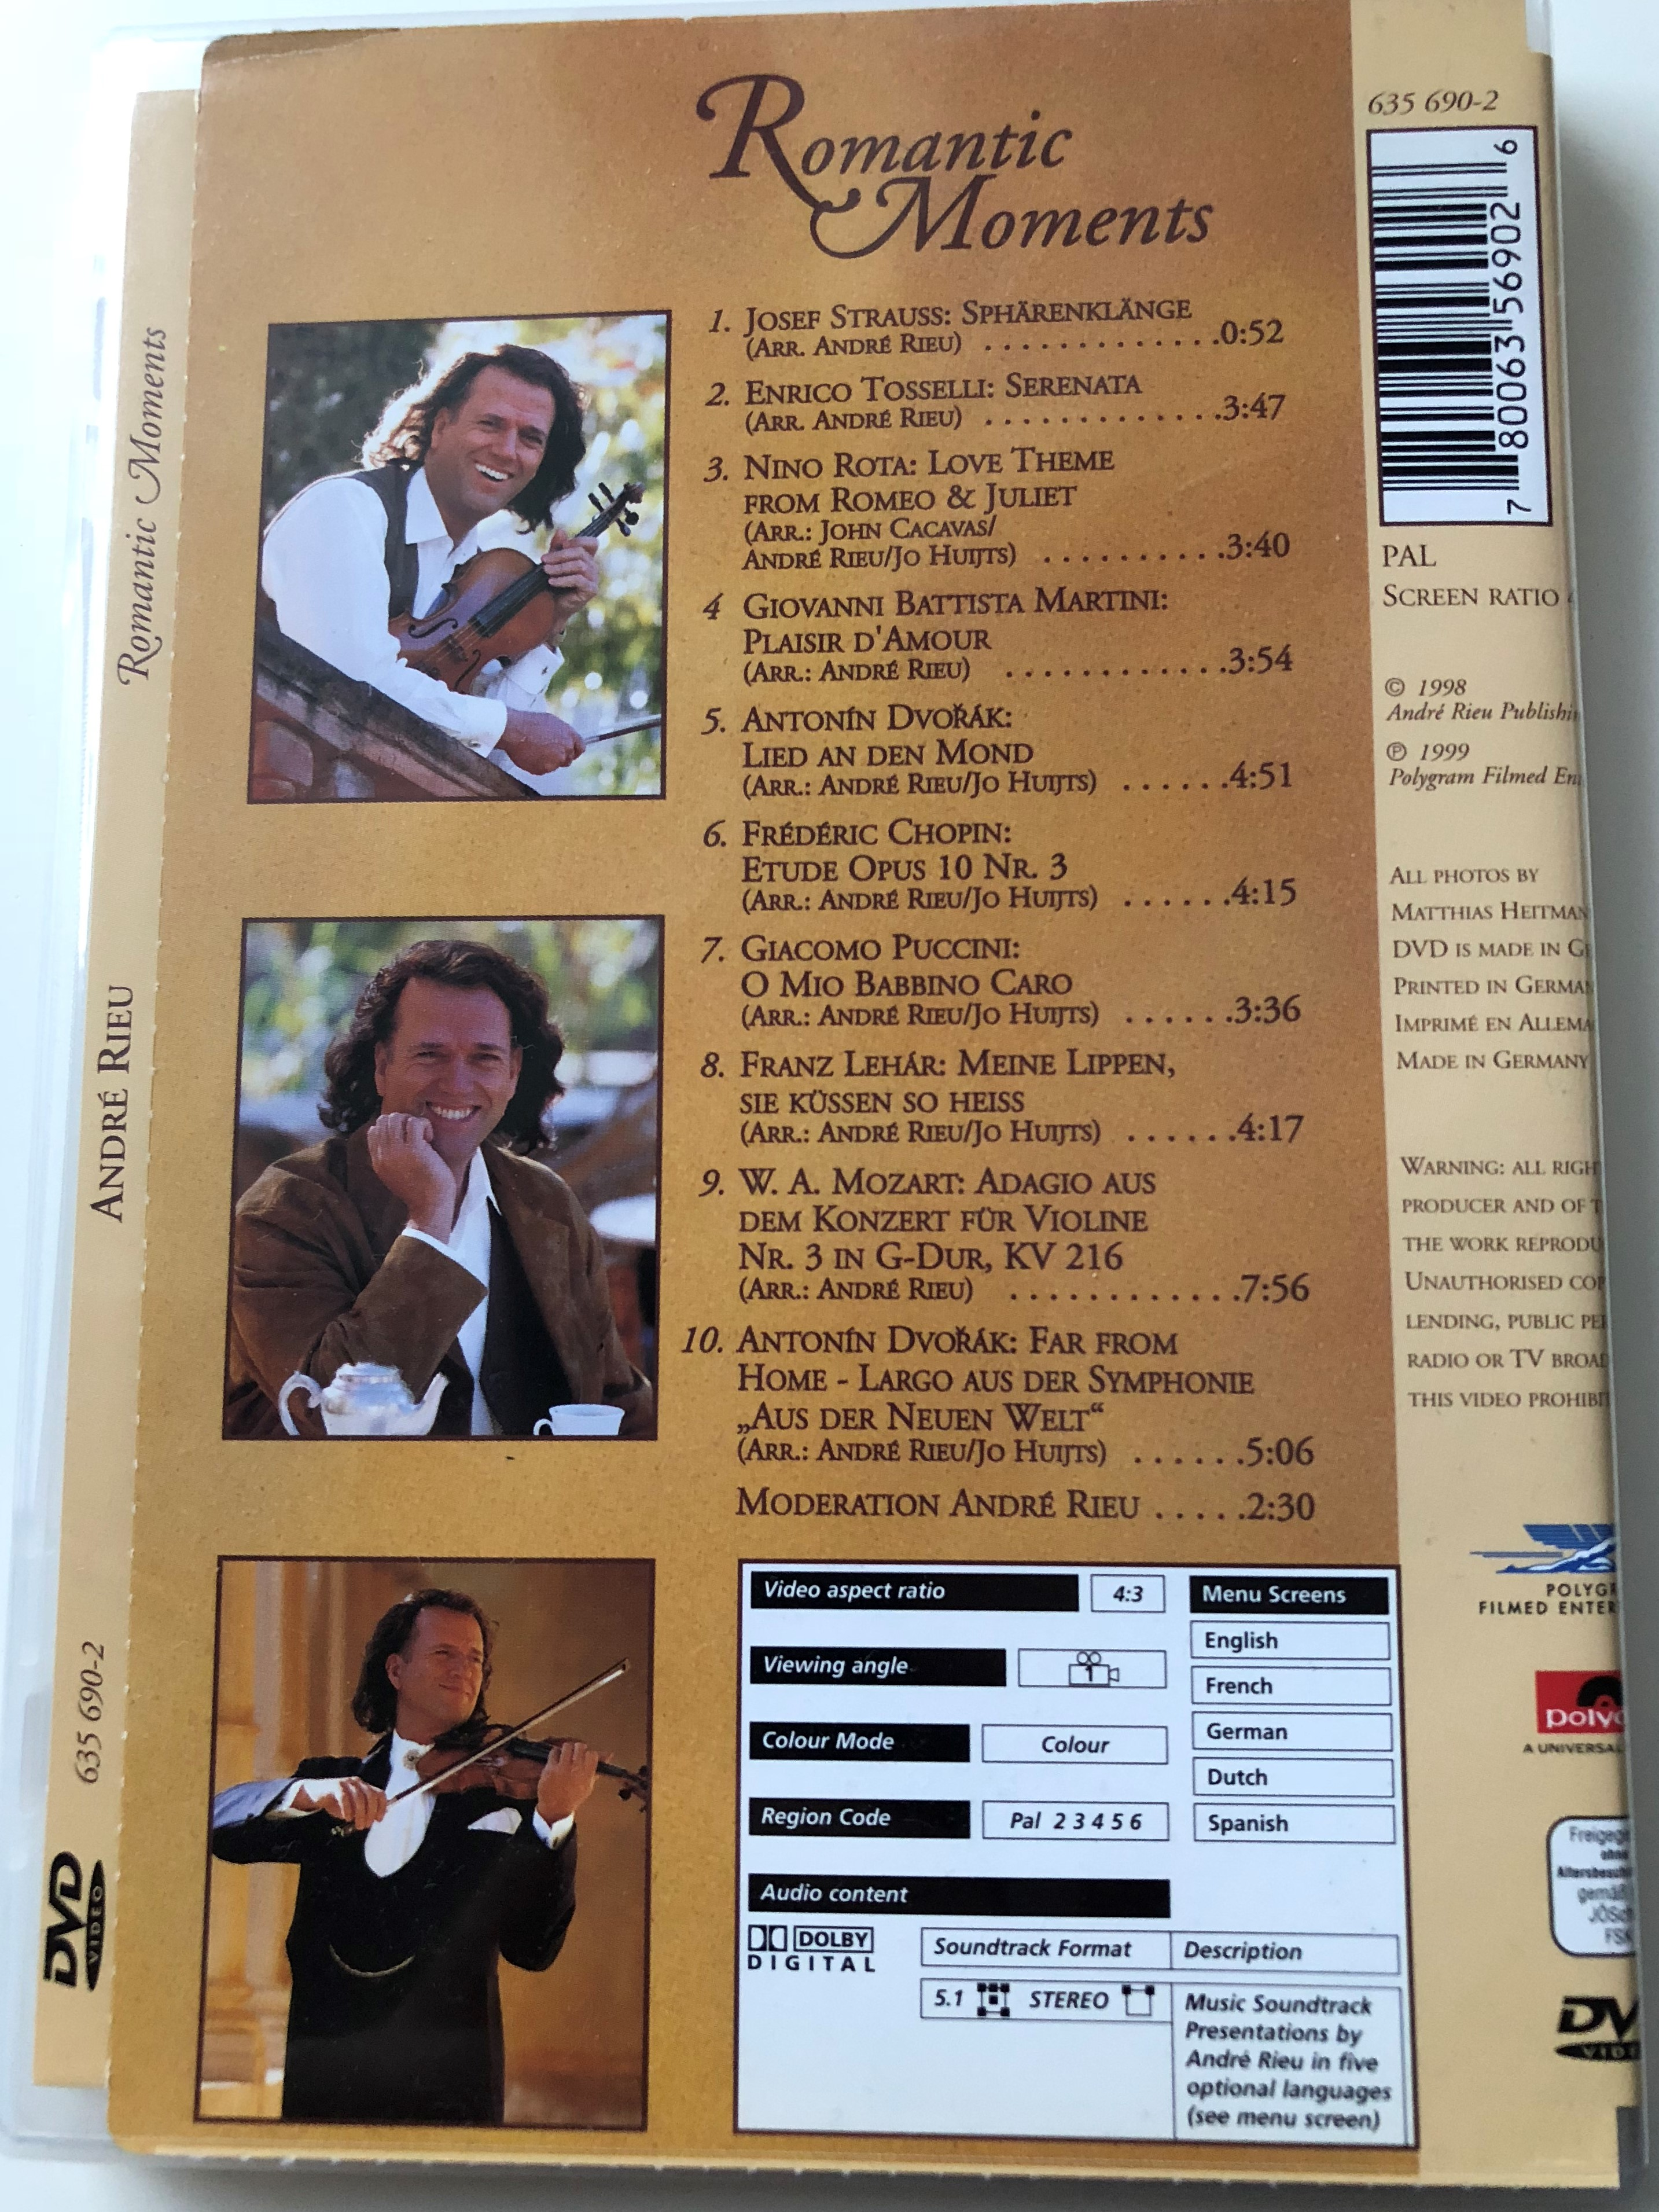 andr-rieu-romantic-moments-dvd-1999-sph-renkl-nge-music-of-the-spheres-anton-n-dvo-k-lied-an-den-mond-giacomo-puccini-o-mio-babbino-caro-2-.jpg